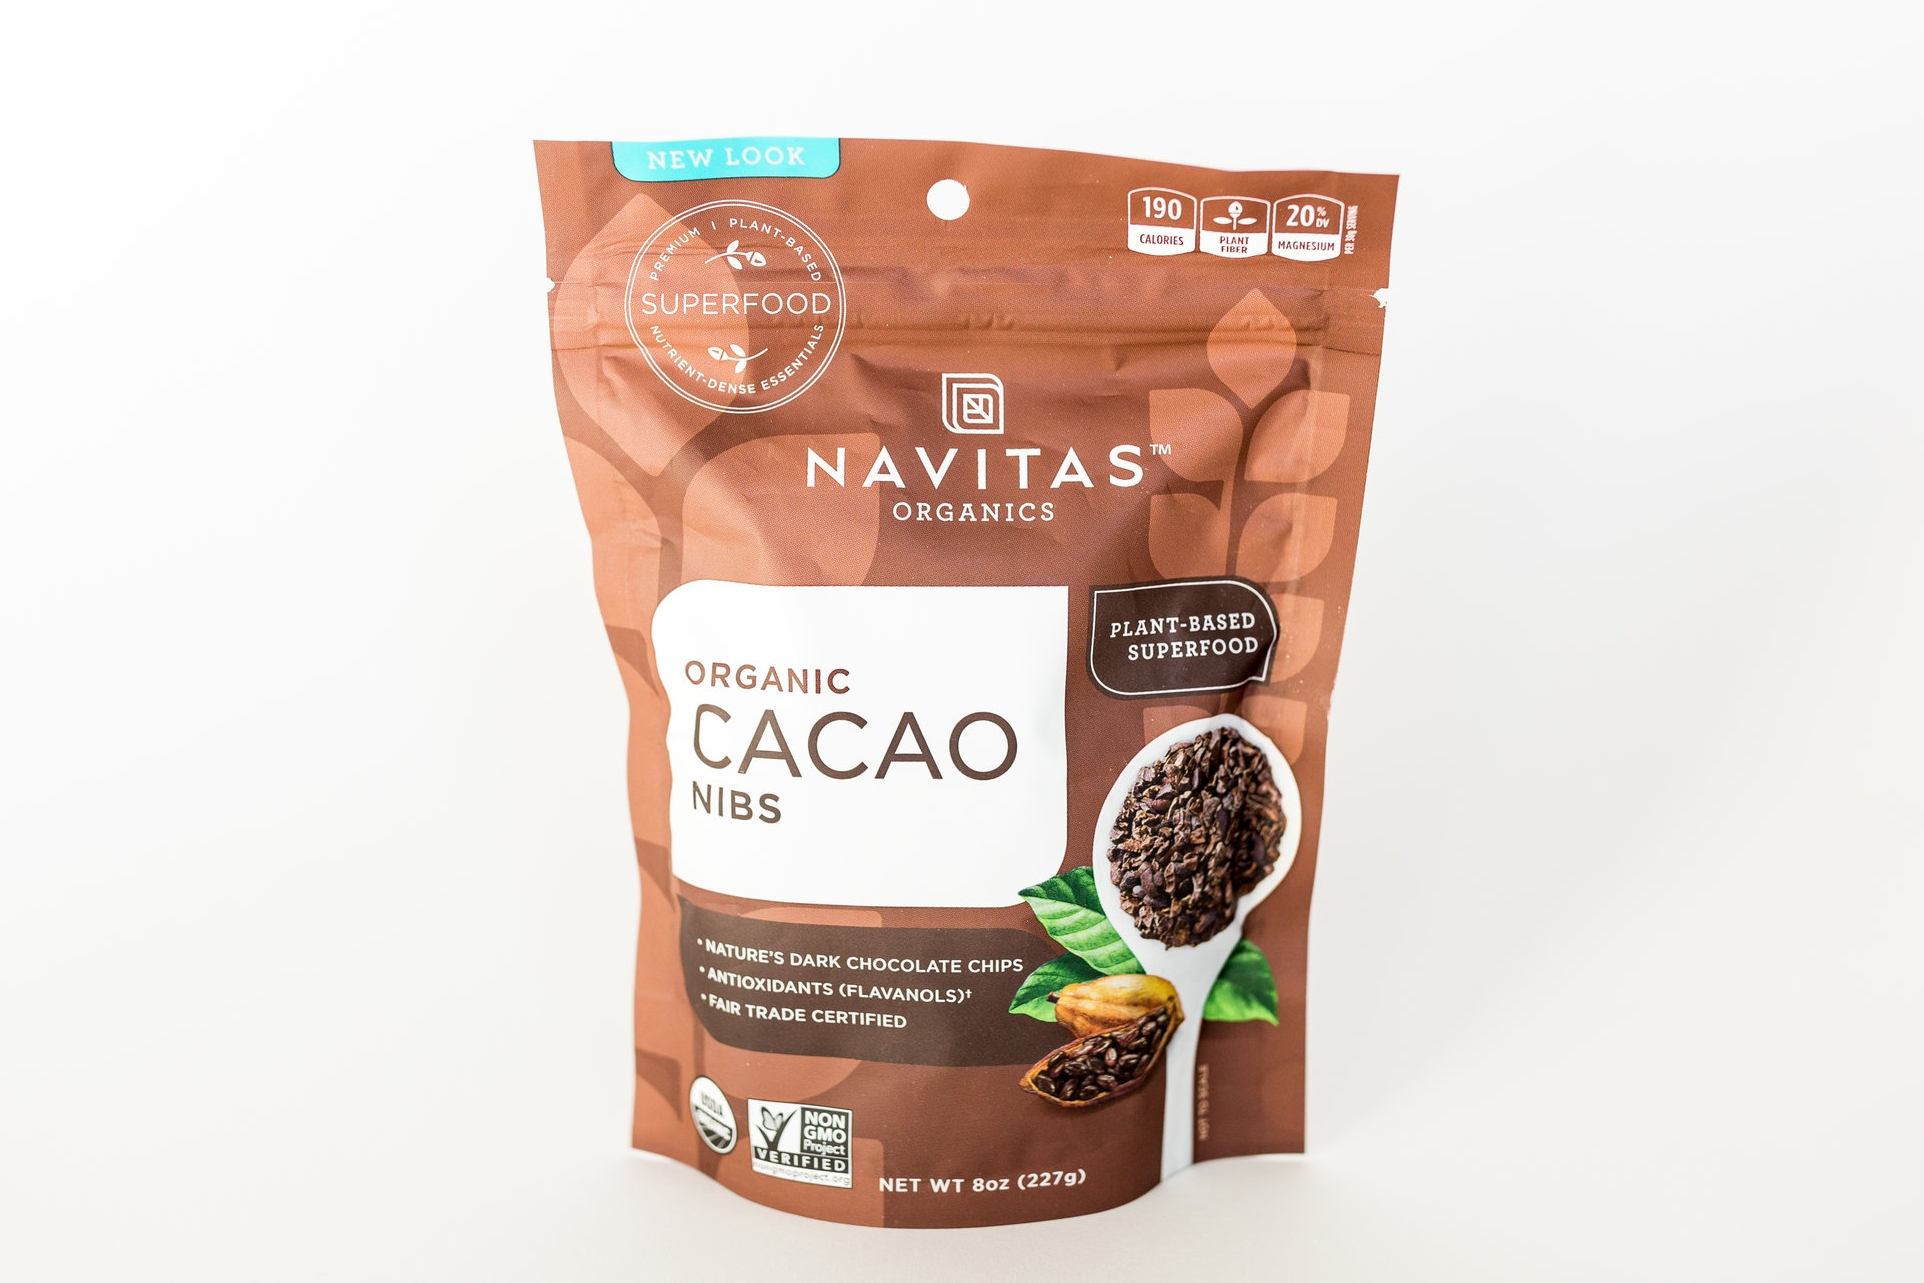 Benefits:  Cacao nibs are the purest form of chocolate, coming from the cacao plant. Cacao nibs are known for their antioxidant properties, as well as their high iron content. I personally like them for their mood and energy boosting affects, but as you can see they truly are a superfood!   Consumption : 1-2T per day, I prefer them in smoothies.